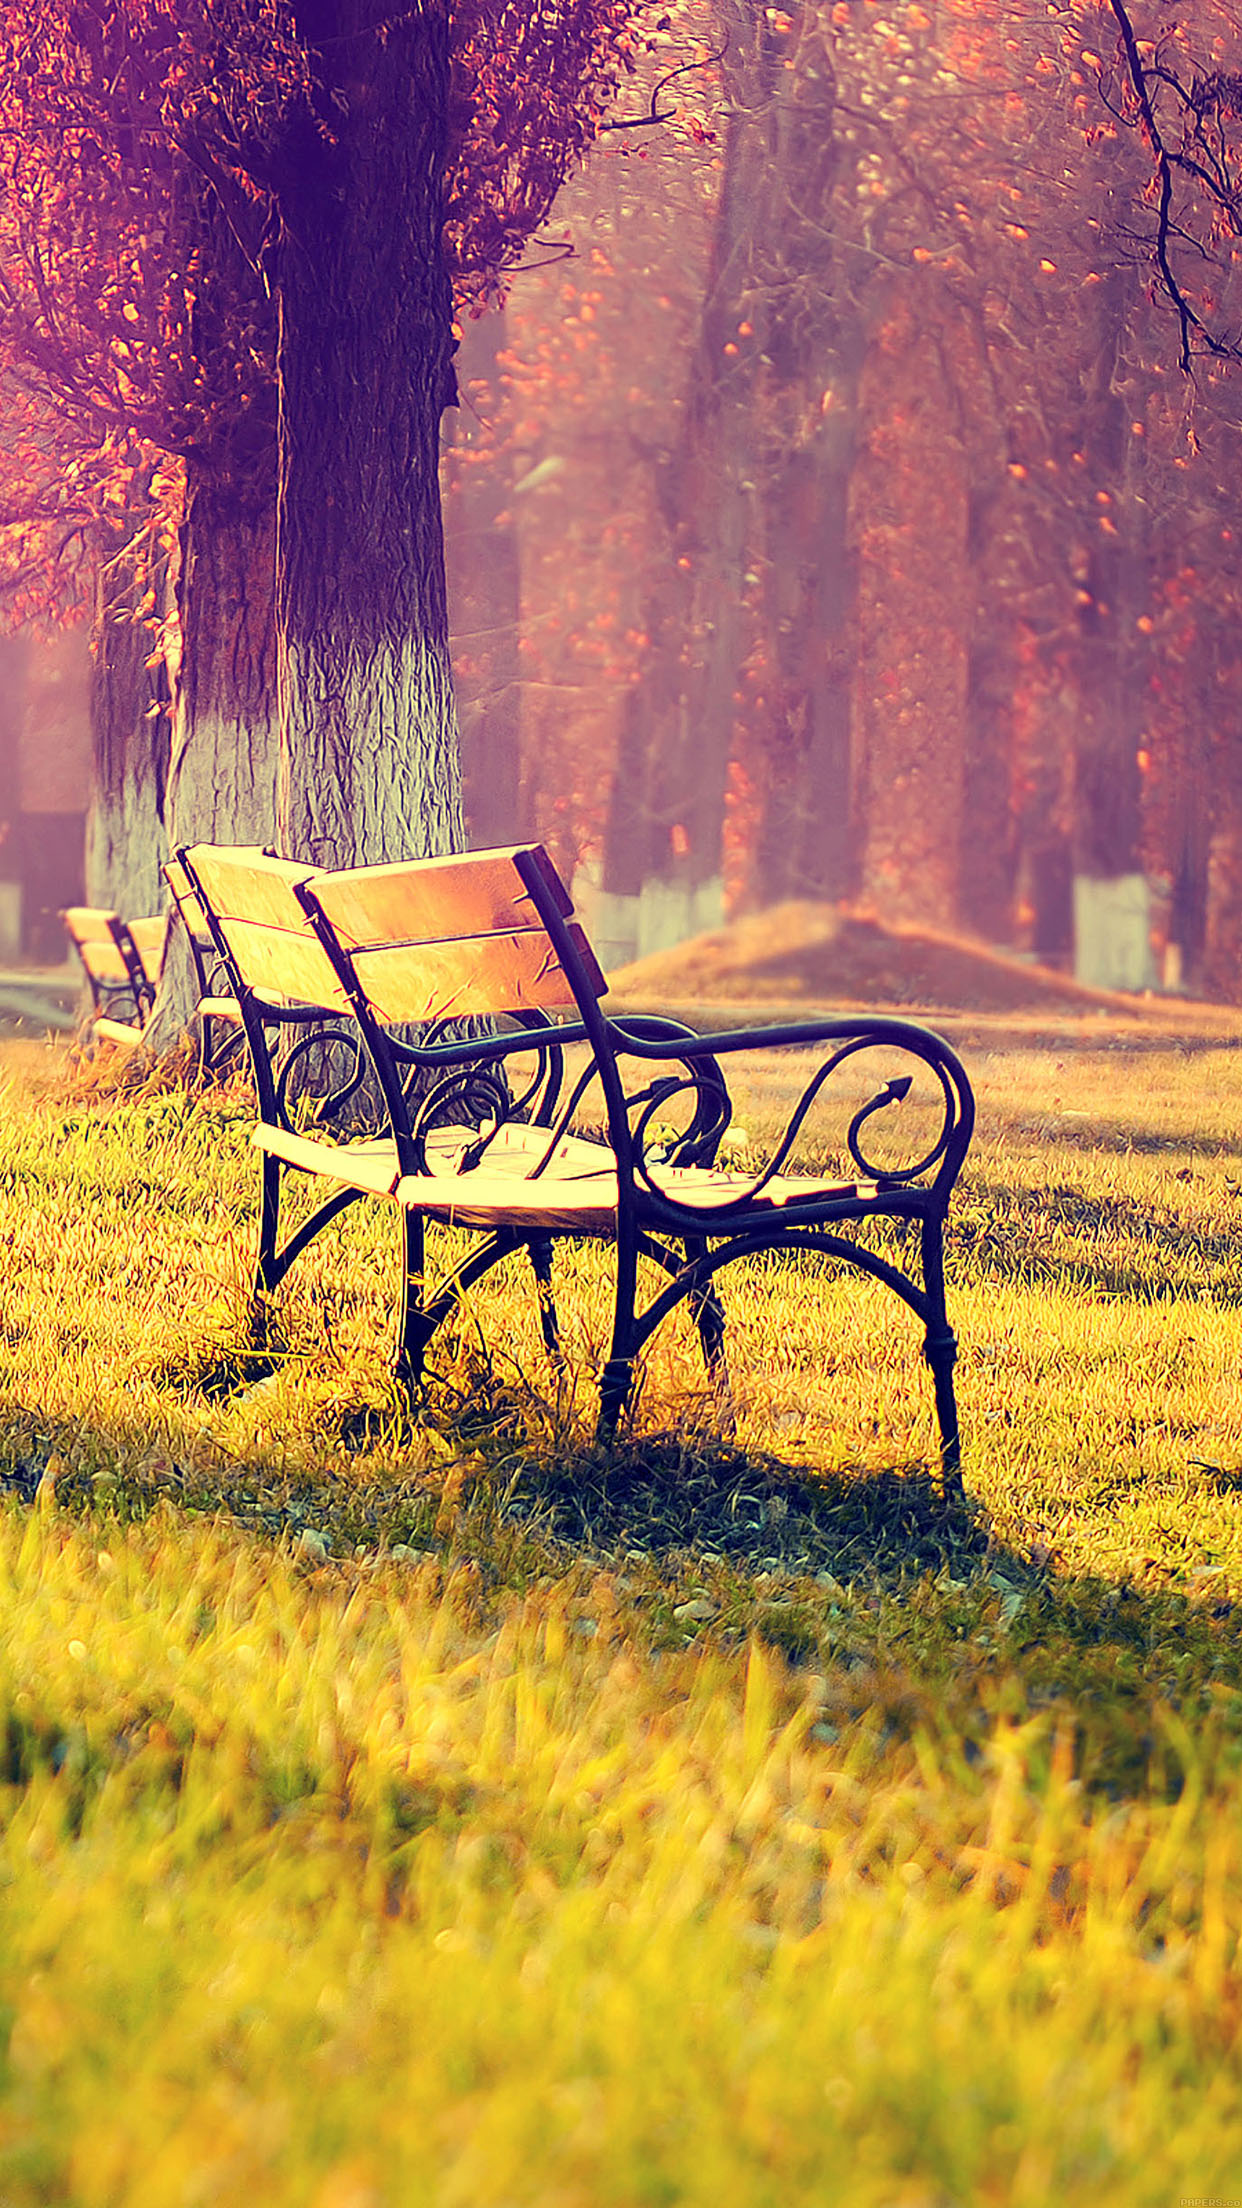 Chair Fall Park Chair Lonely Nature 3Wallpapers iPhone Parallax Chair: Fall park chair lonely nature